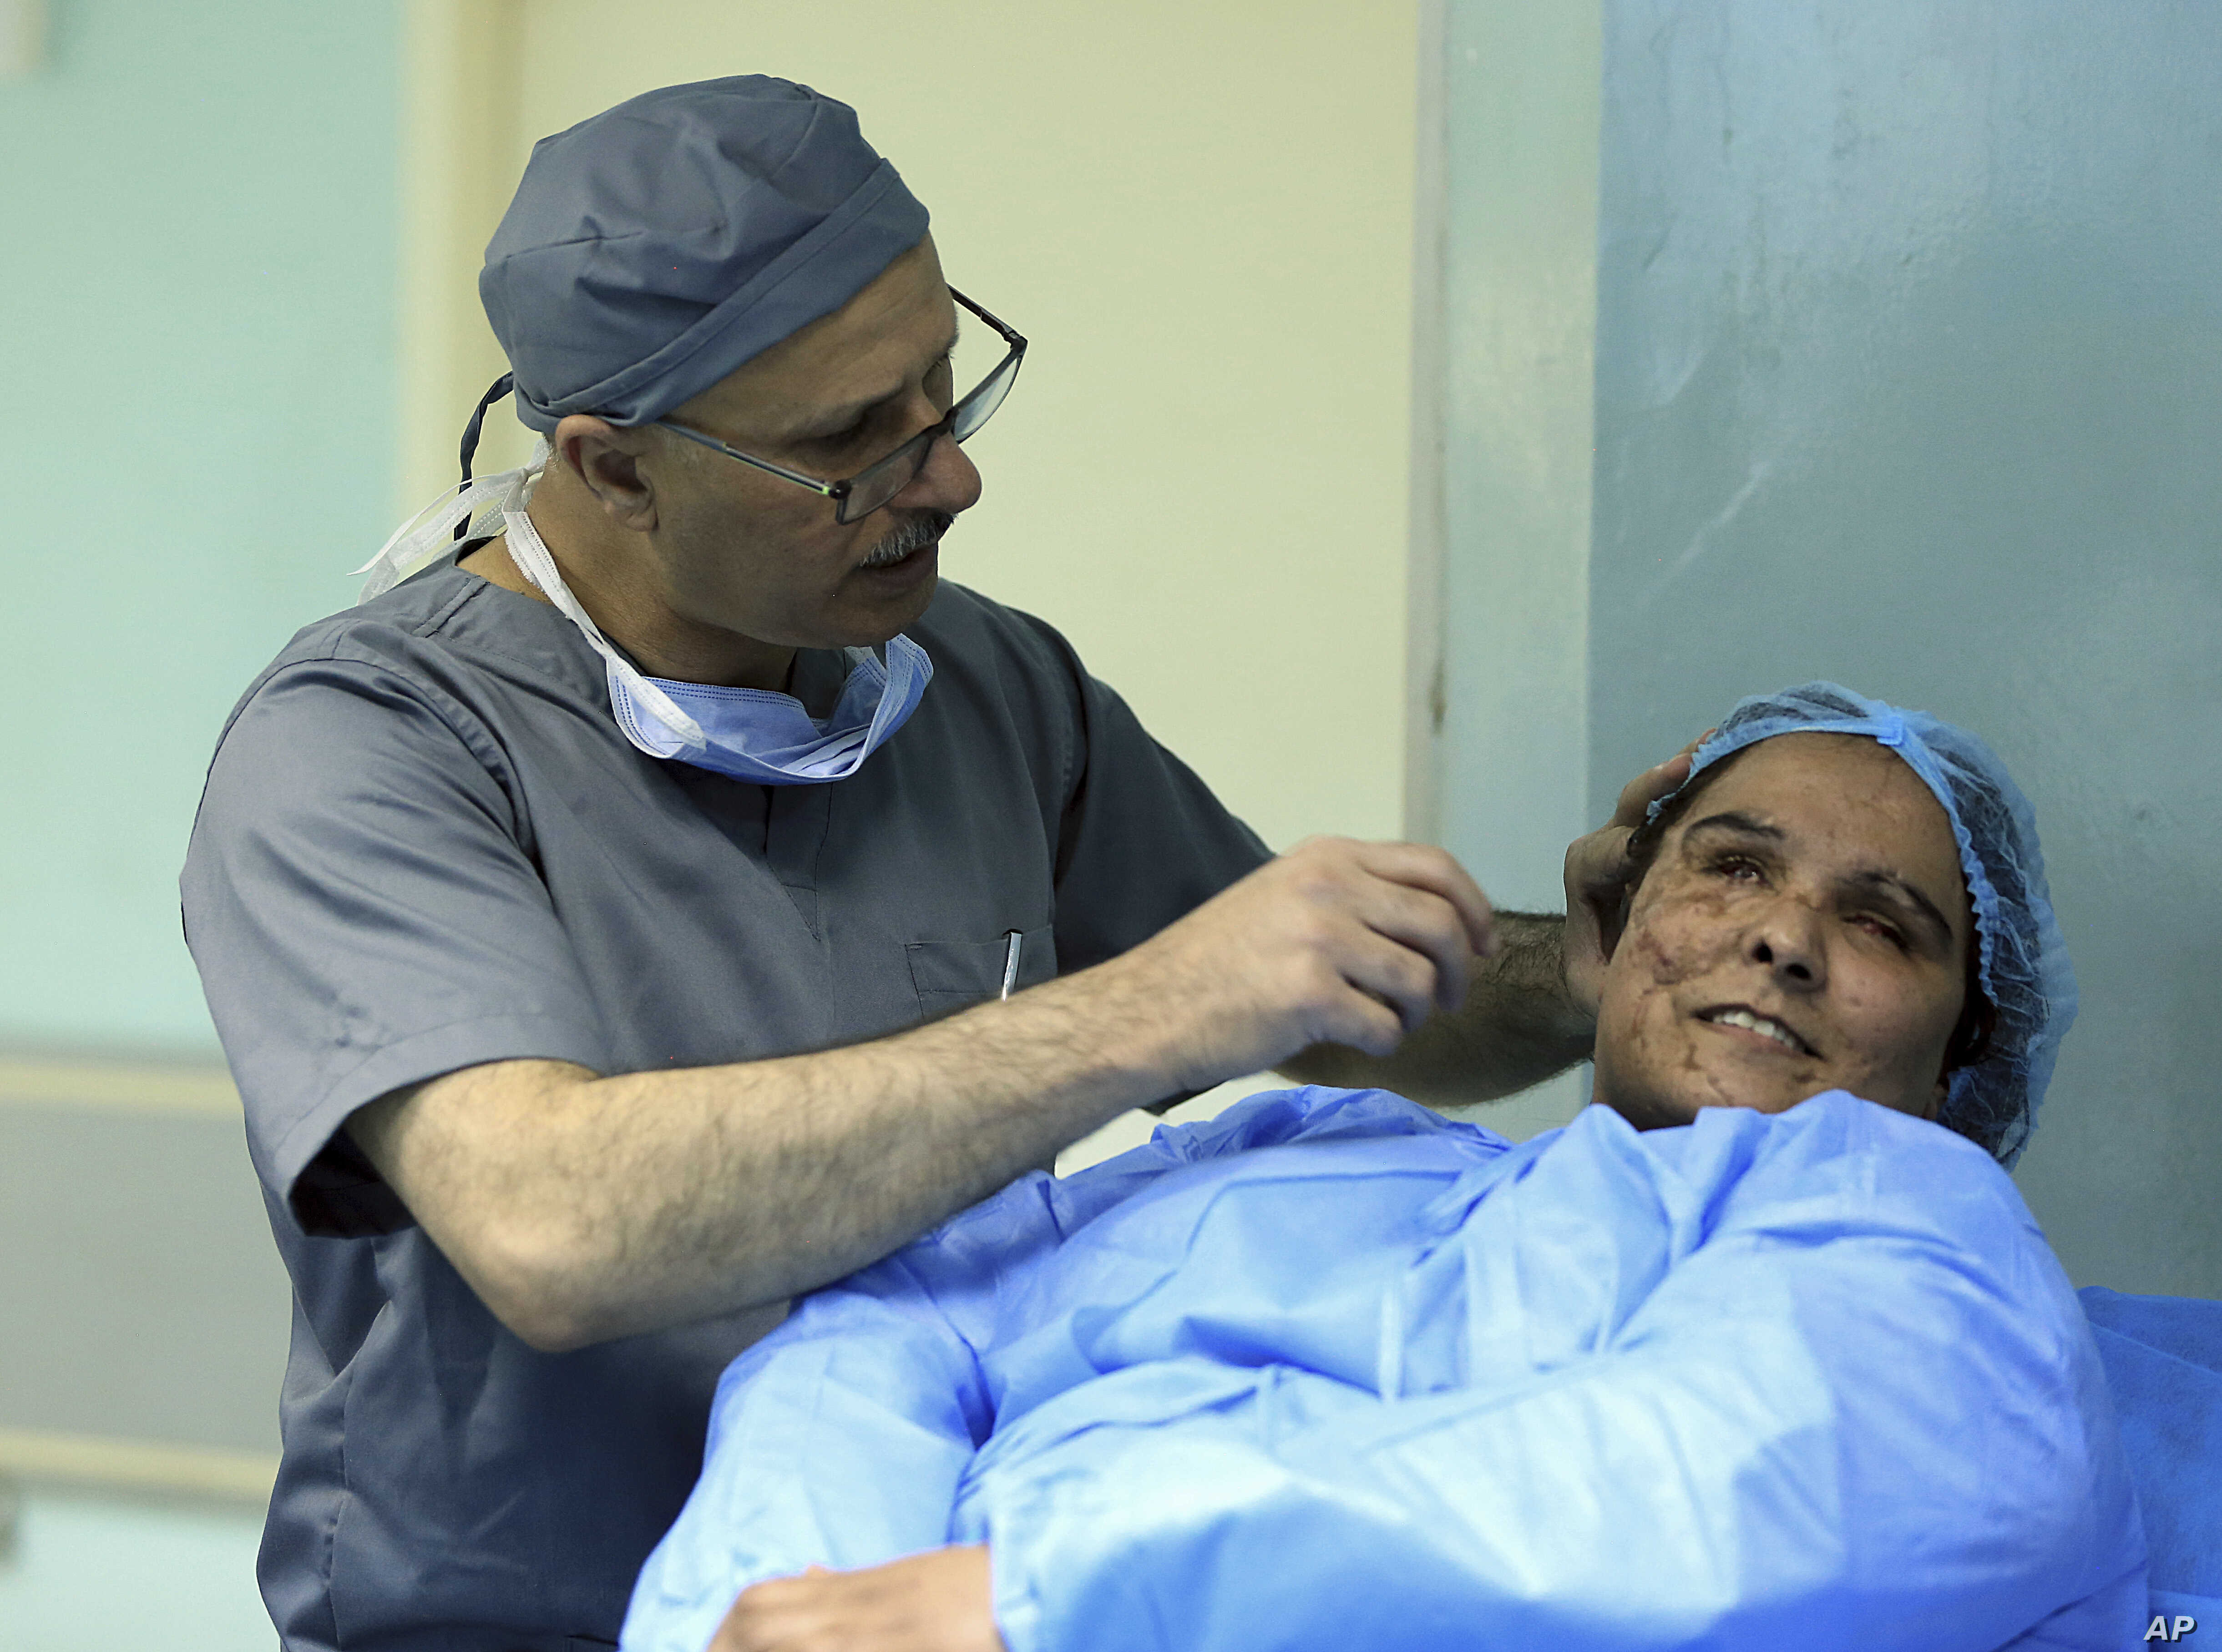 Plastic surgeon Dr. Abbas al-Sahan makes surgical marks around the damaged ear of Saja Ahmed Saleem, before her reconstructive surgery in Baghdad, Iraq, Nov. 6, 2018. Saleem lost both eyes, right arm and ear and suffered disfigurement in a bomb explo...